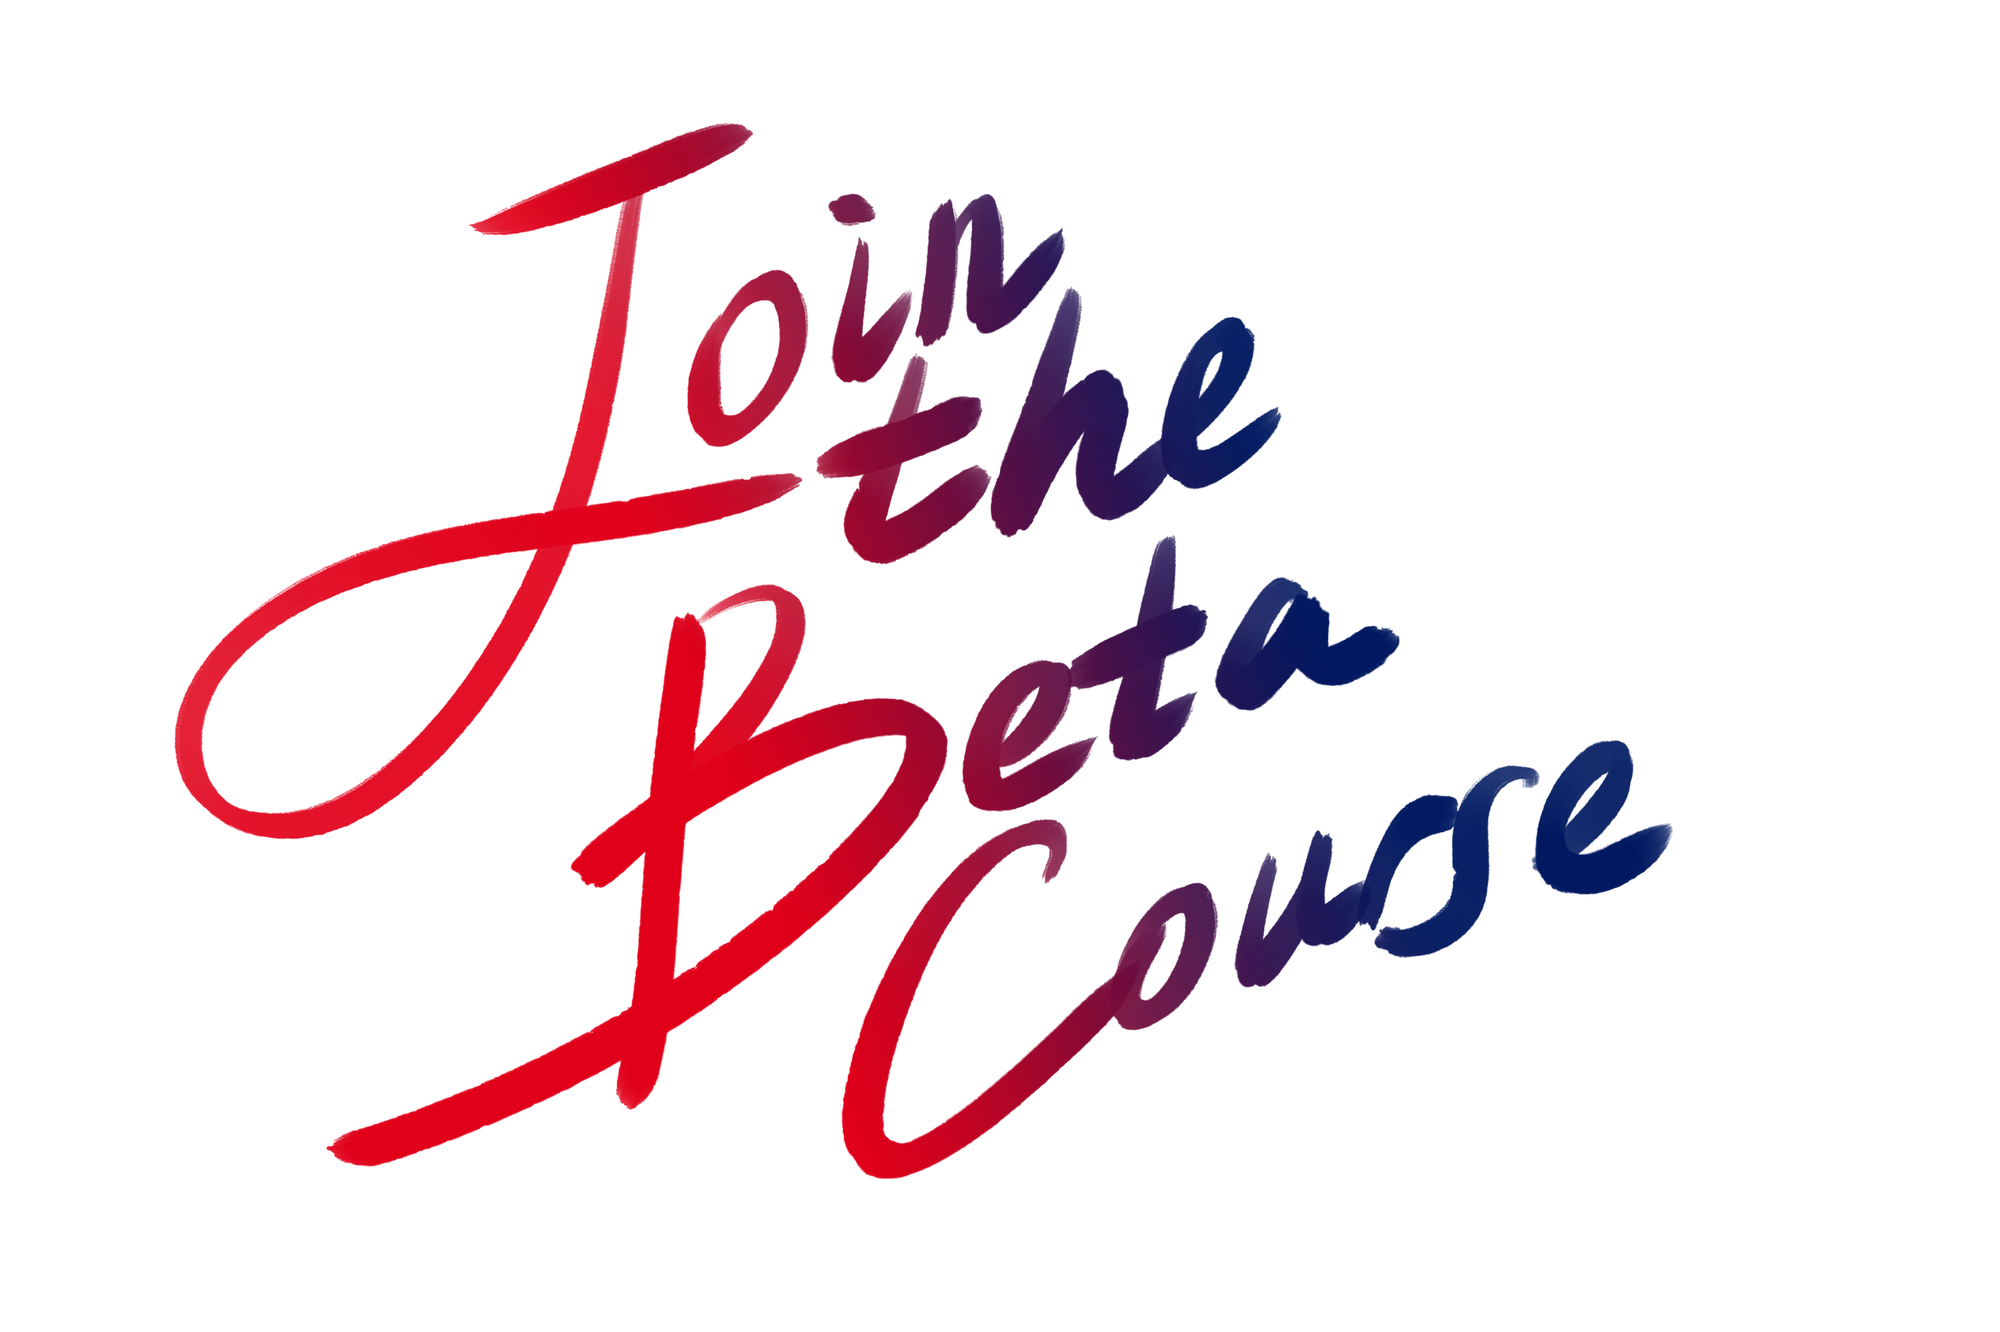 Join the Beta Course